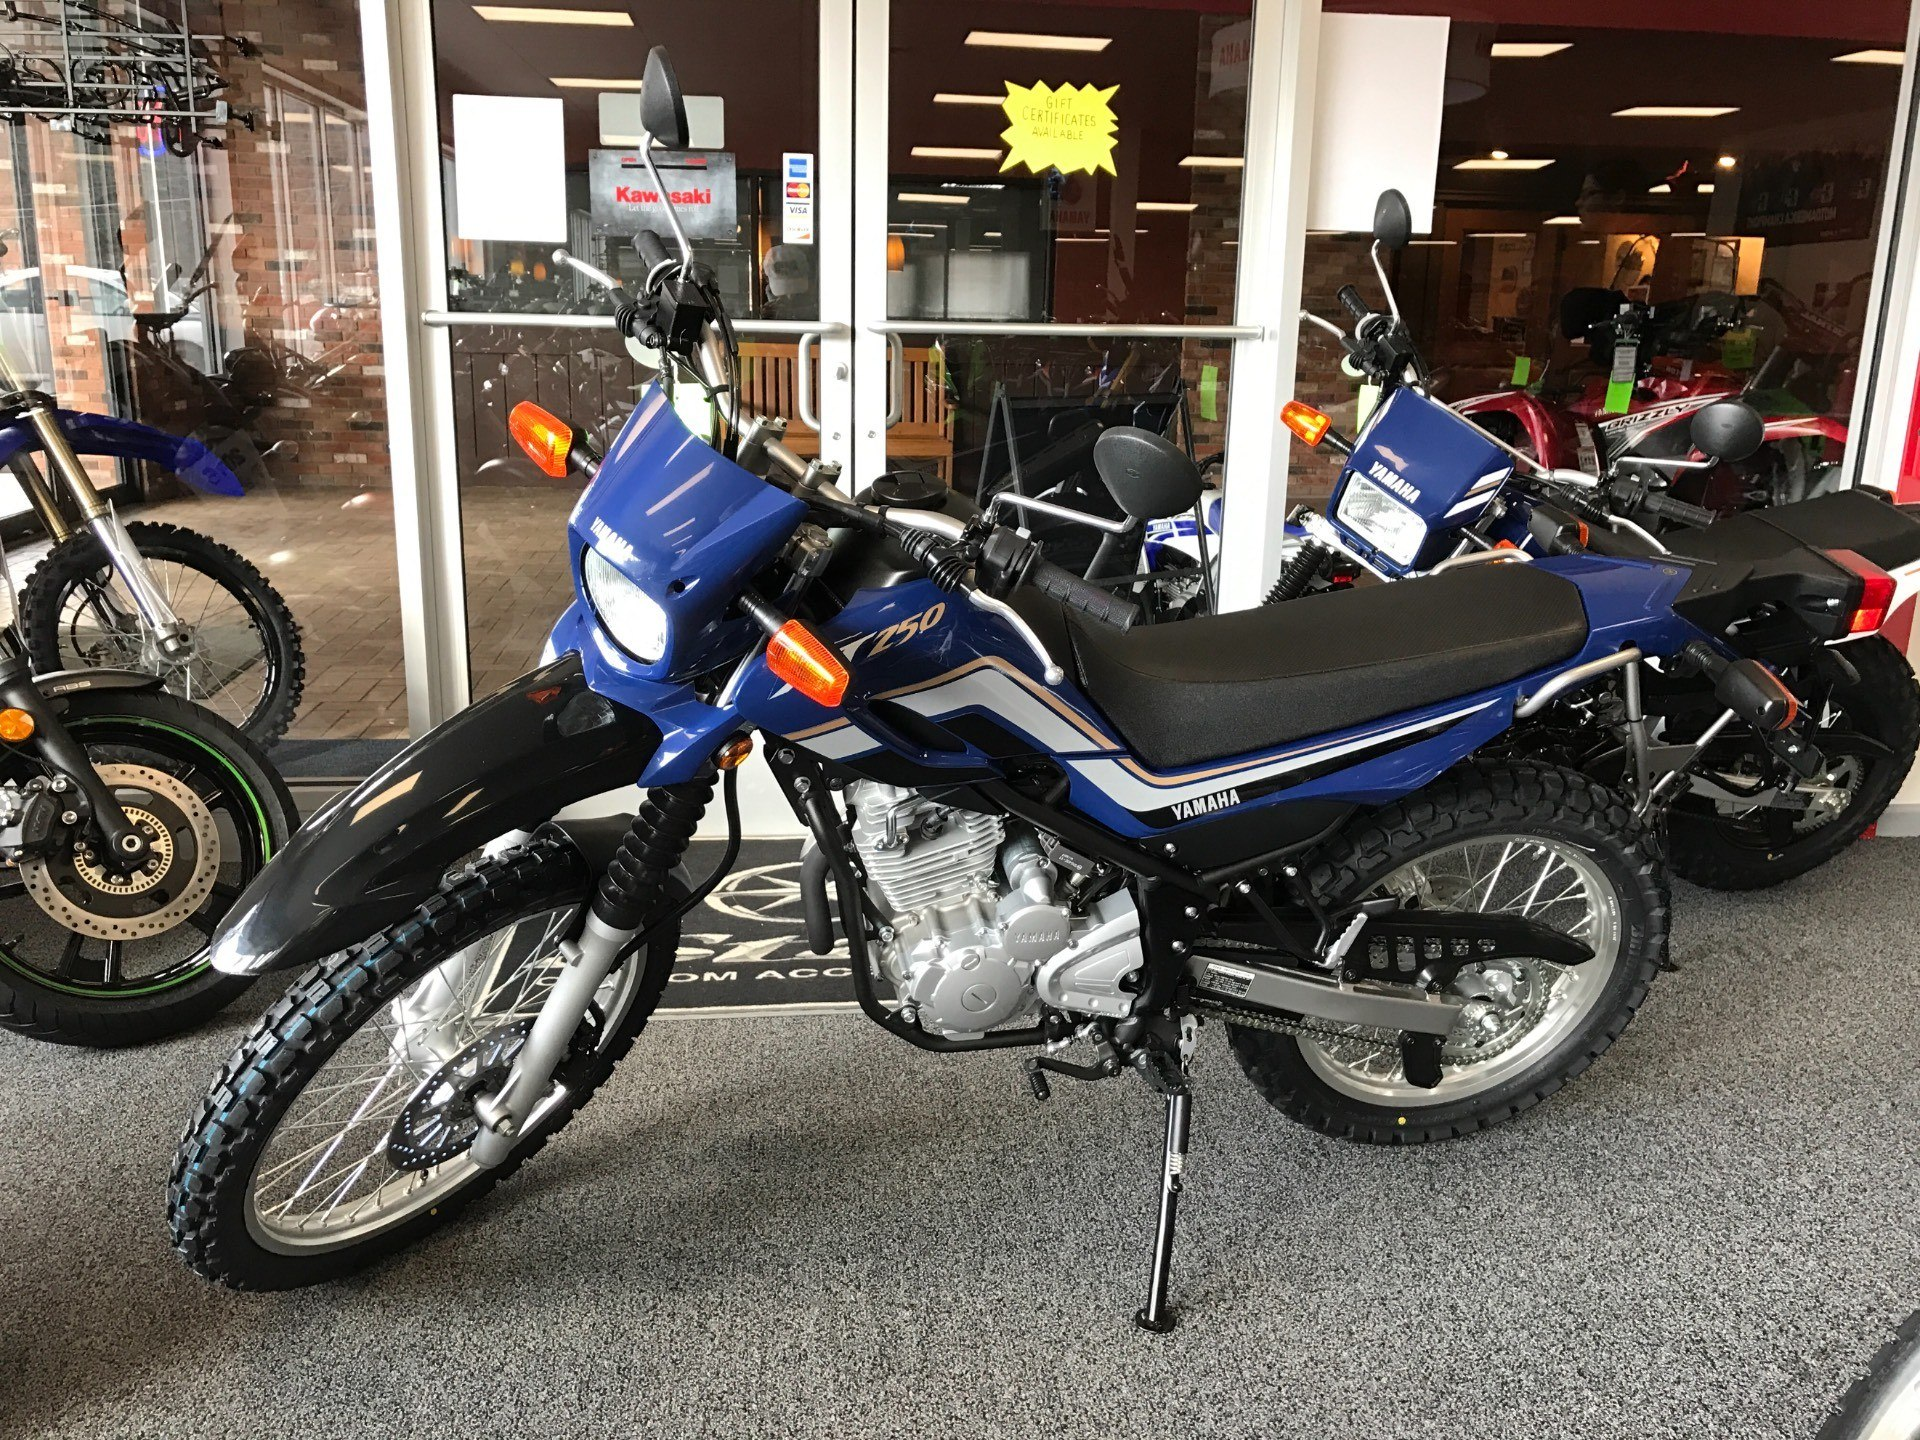 Nepa power sports inc inventory dealer in honesdale pa for Yamaha dealer in pa